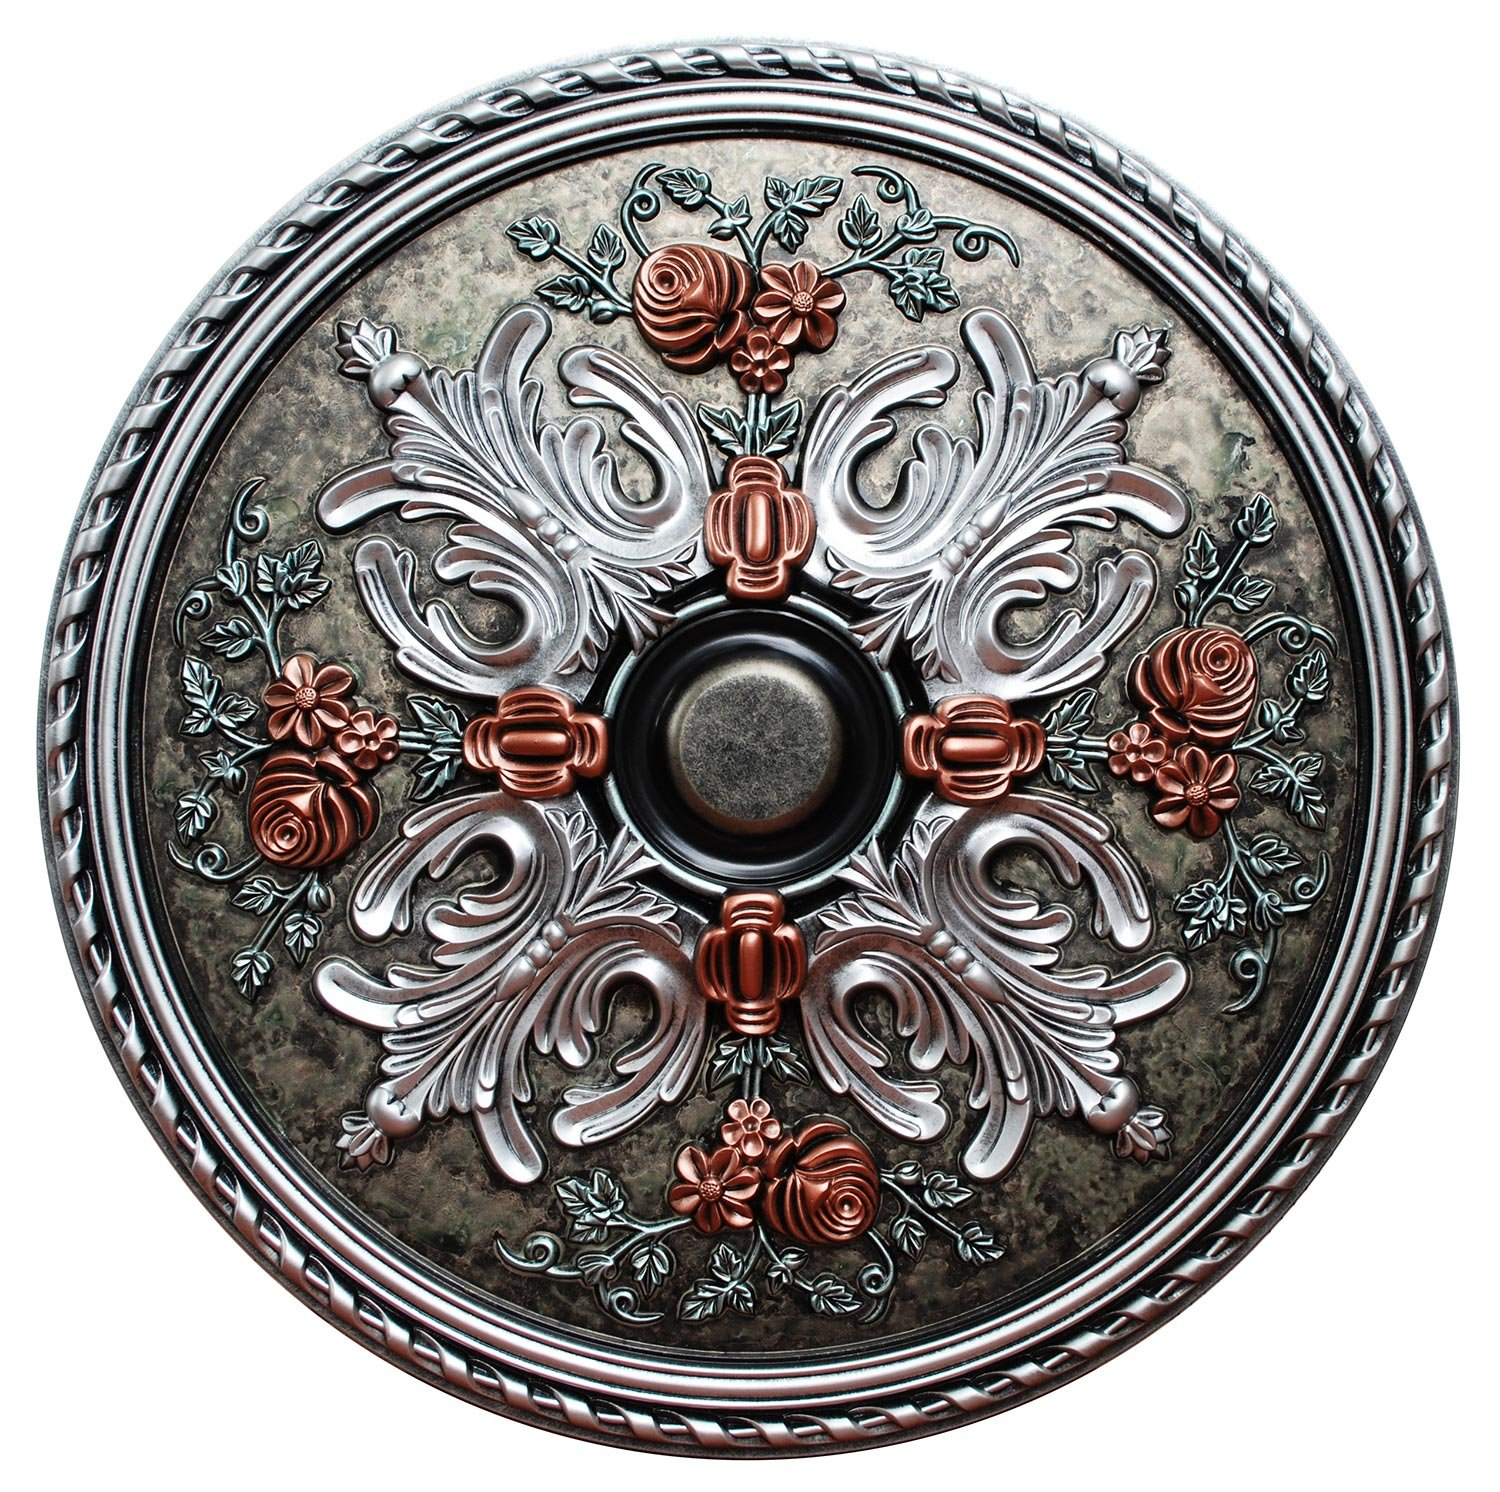 Fine Art Deco ''Winter Blossom'' Hand Painted Ceiling Medallion 32-3/4 In. Finished in Silver, Ivy, Teal and Copper Penny by Fine Art Deco